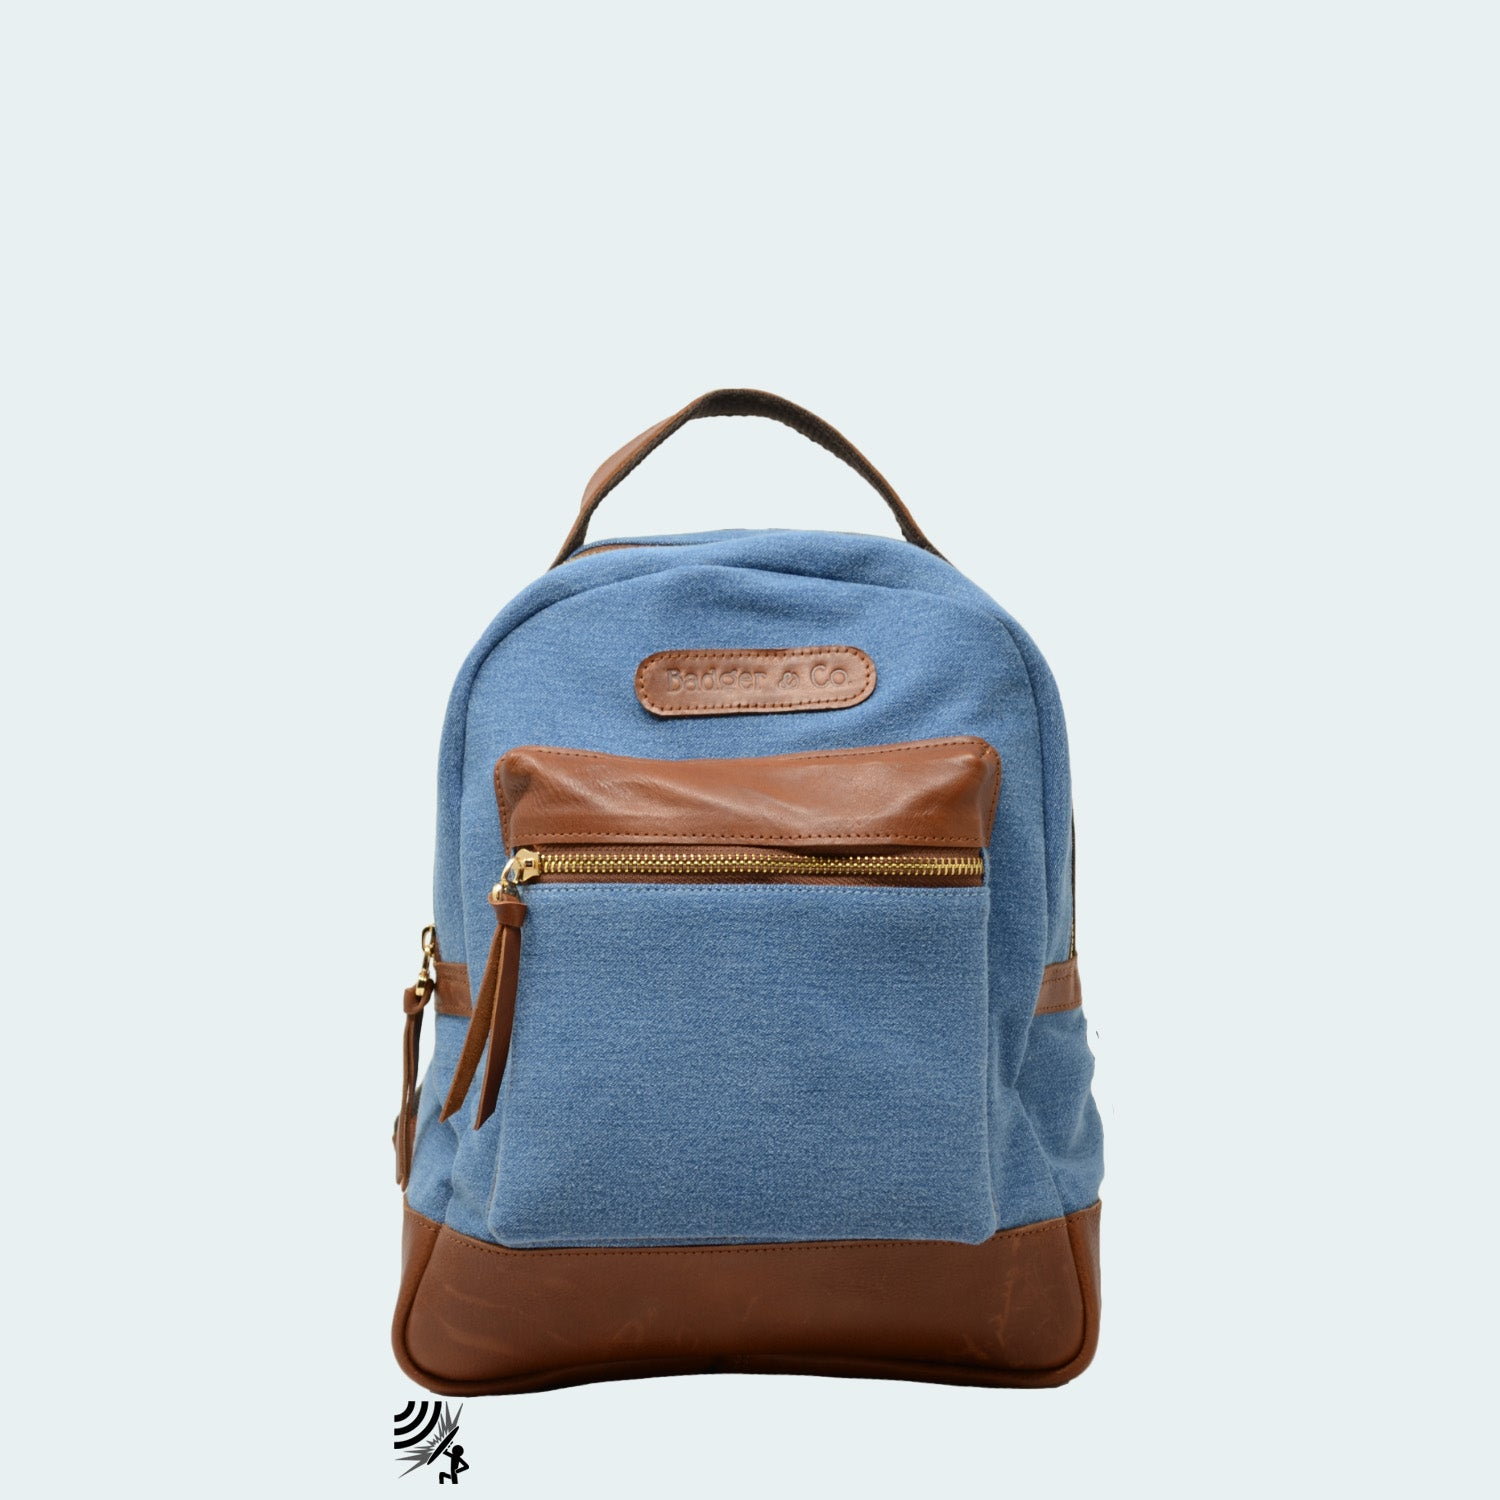 Mini Denim Backpack - Sky Blue with Cognac Brown Leather